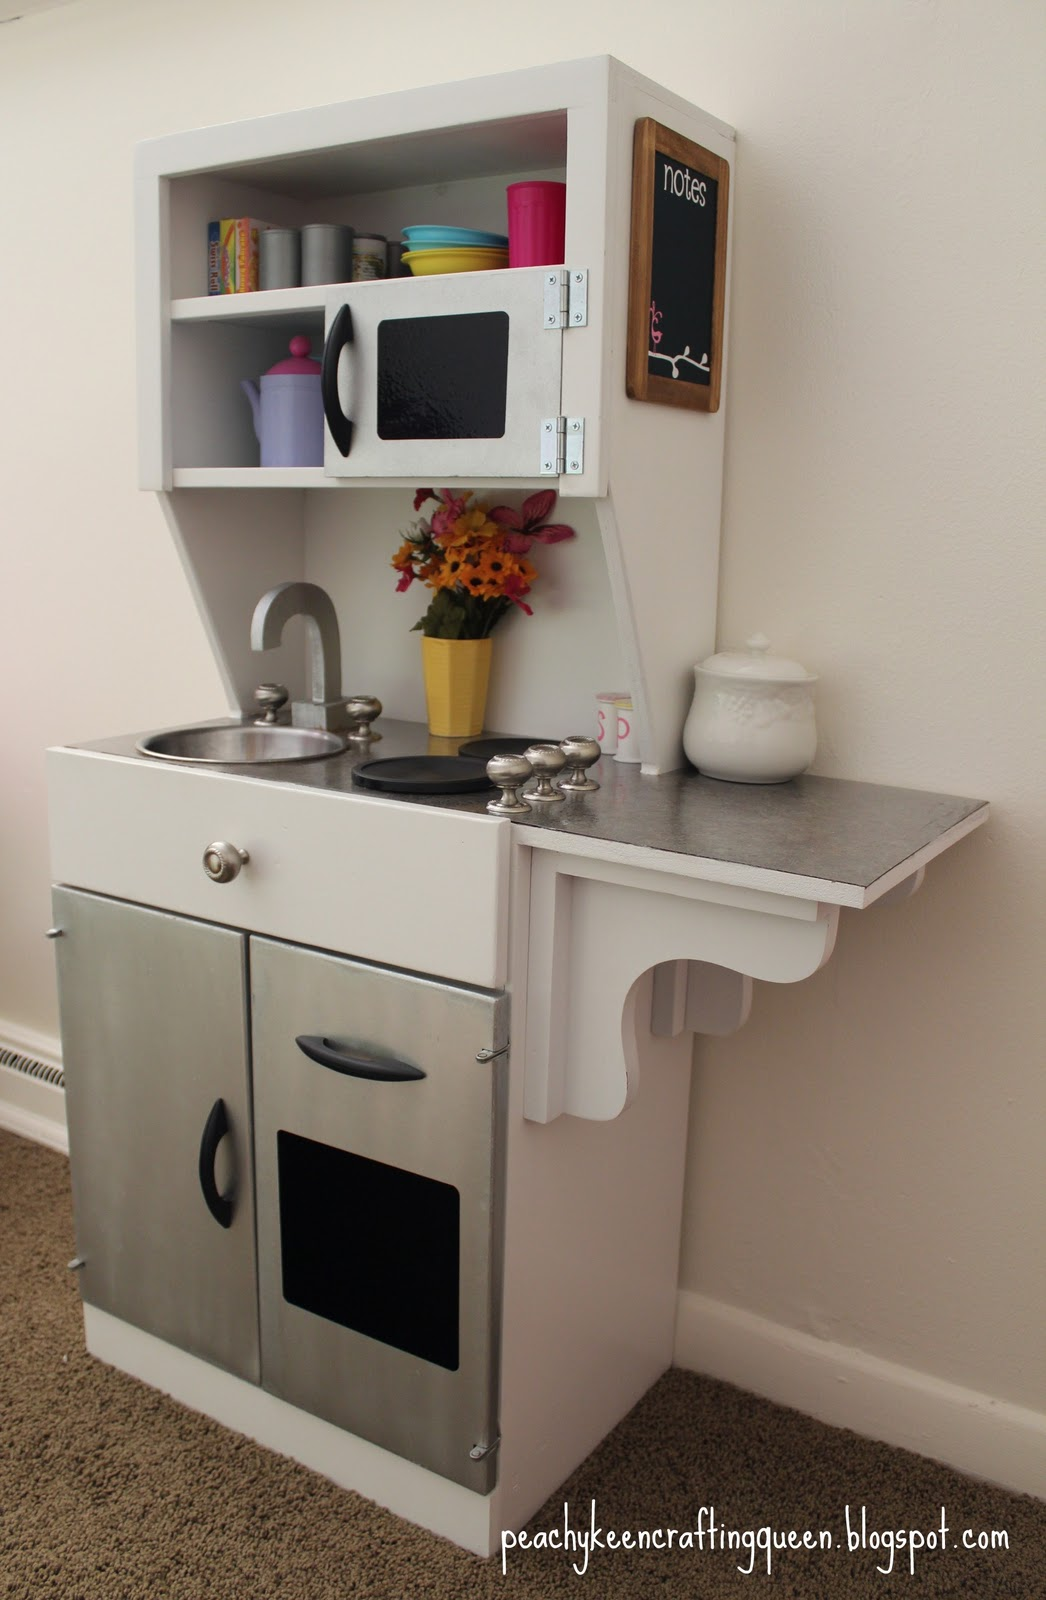 Peachy Keen Crafting Queens DIY Childrens Play Kitchen